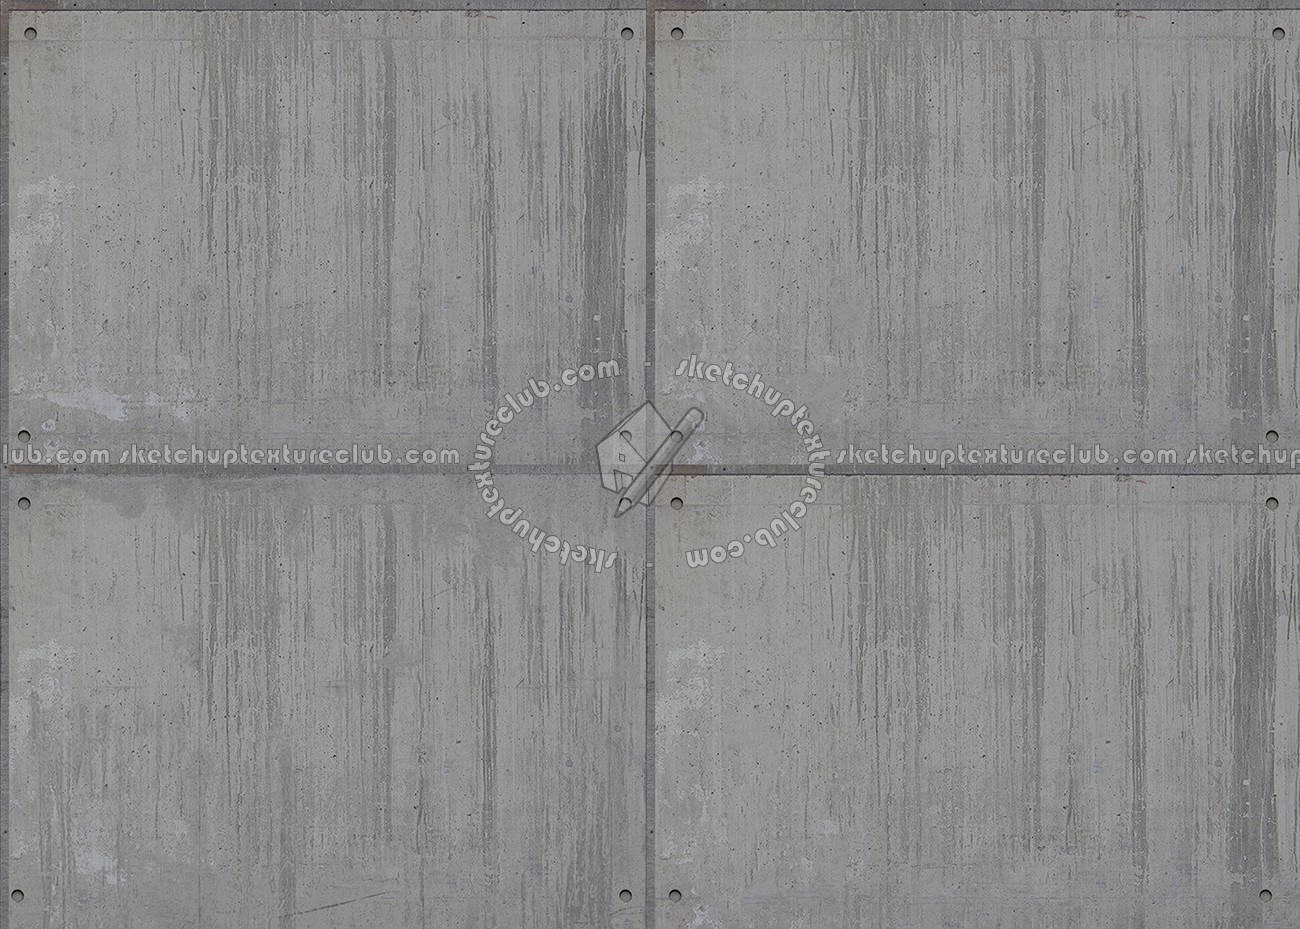 Concrete Dirt Plates Wall Texture Seamless